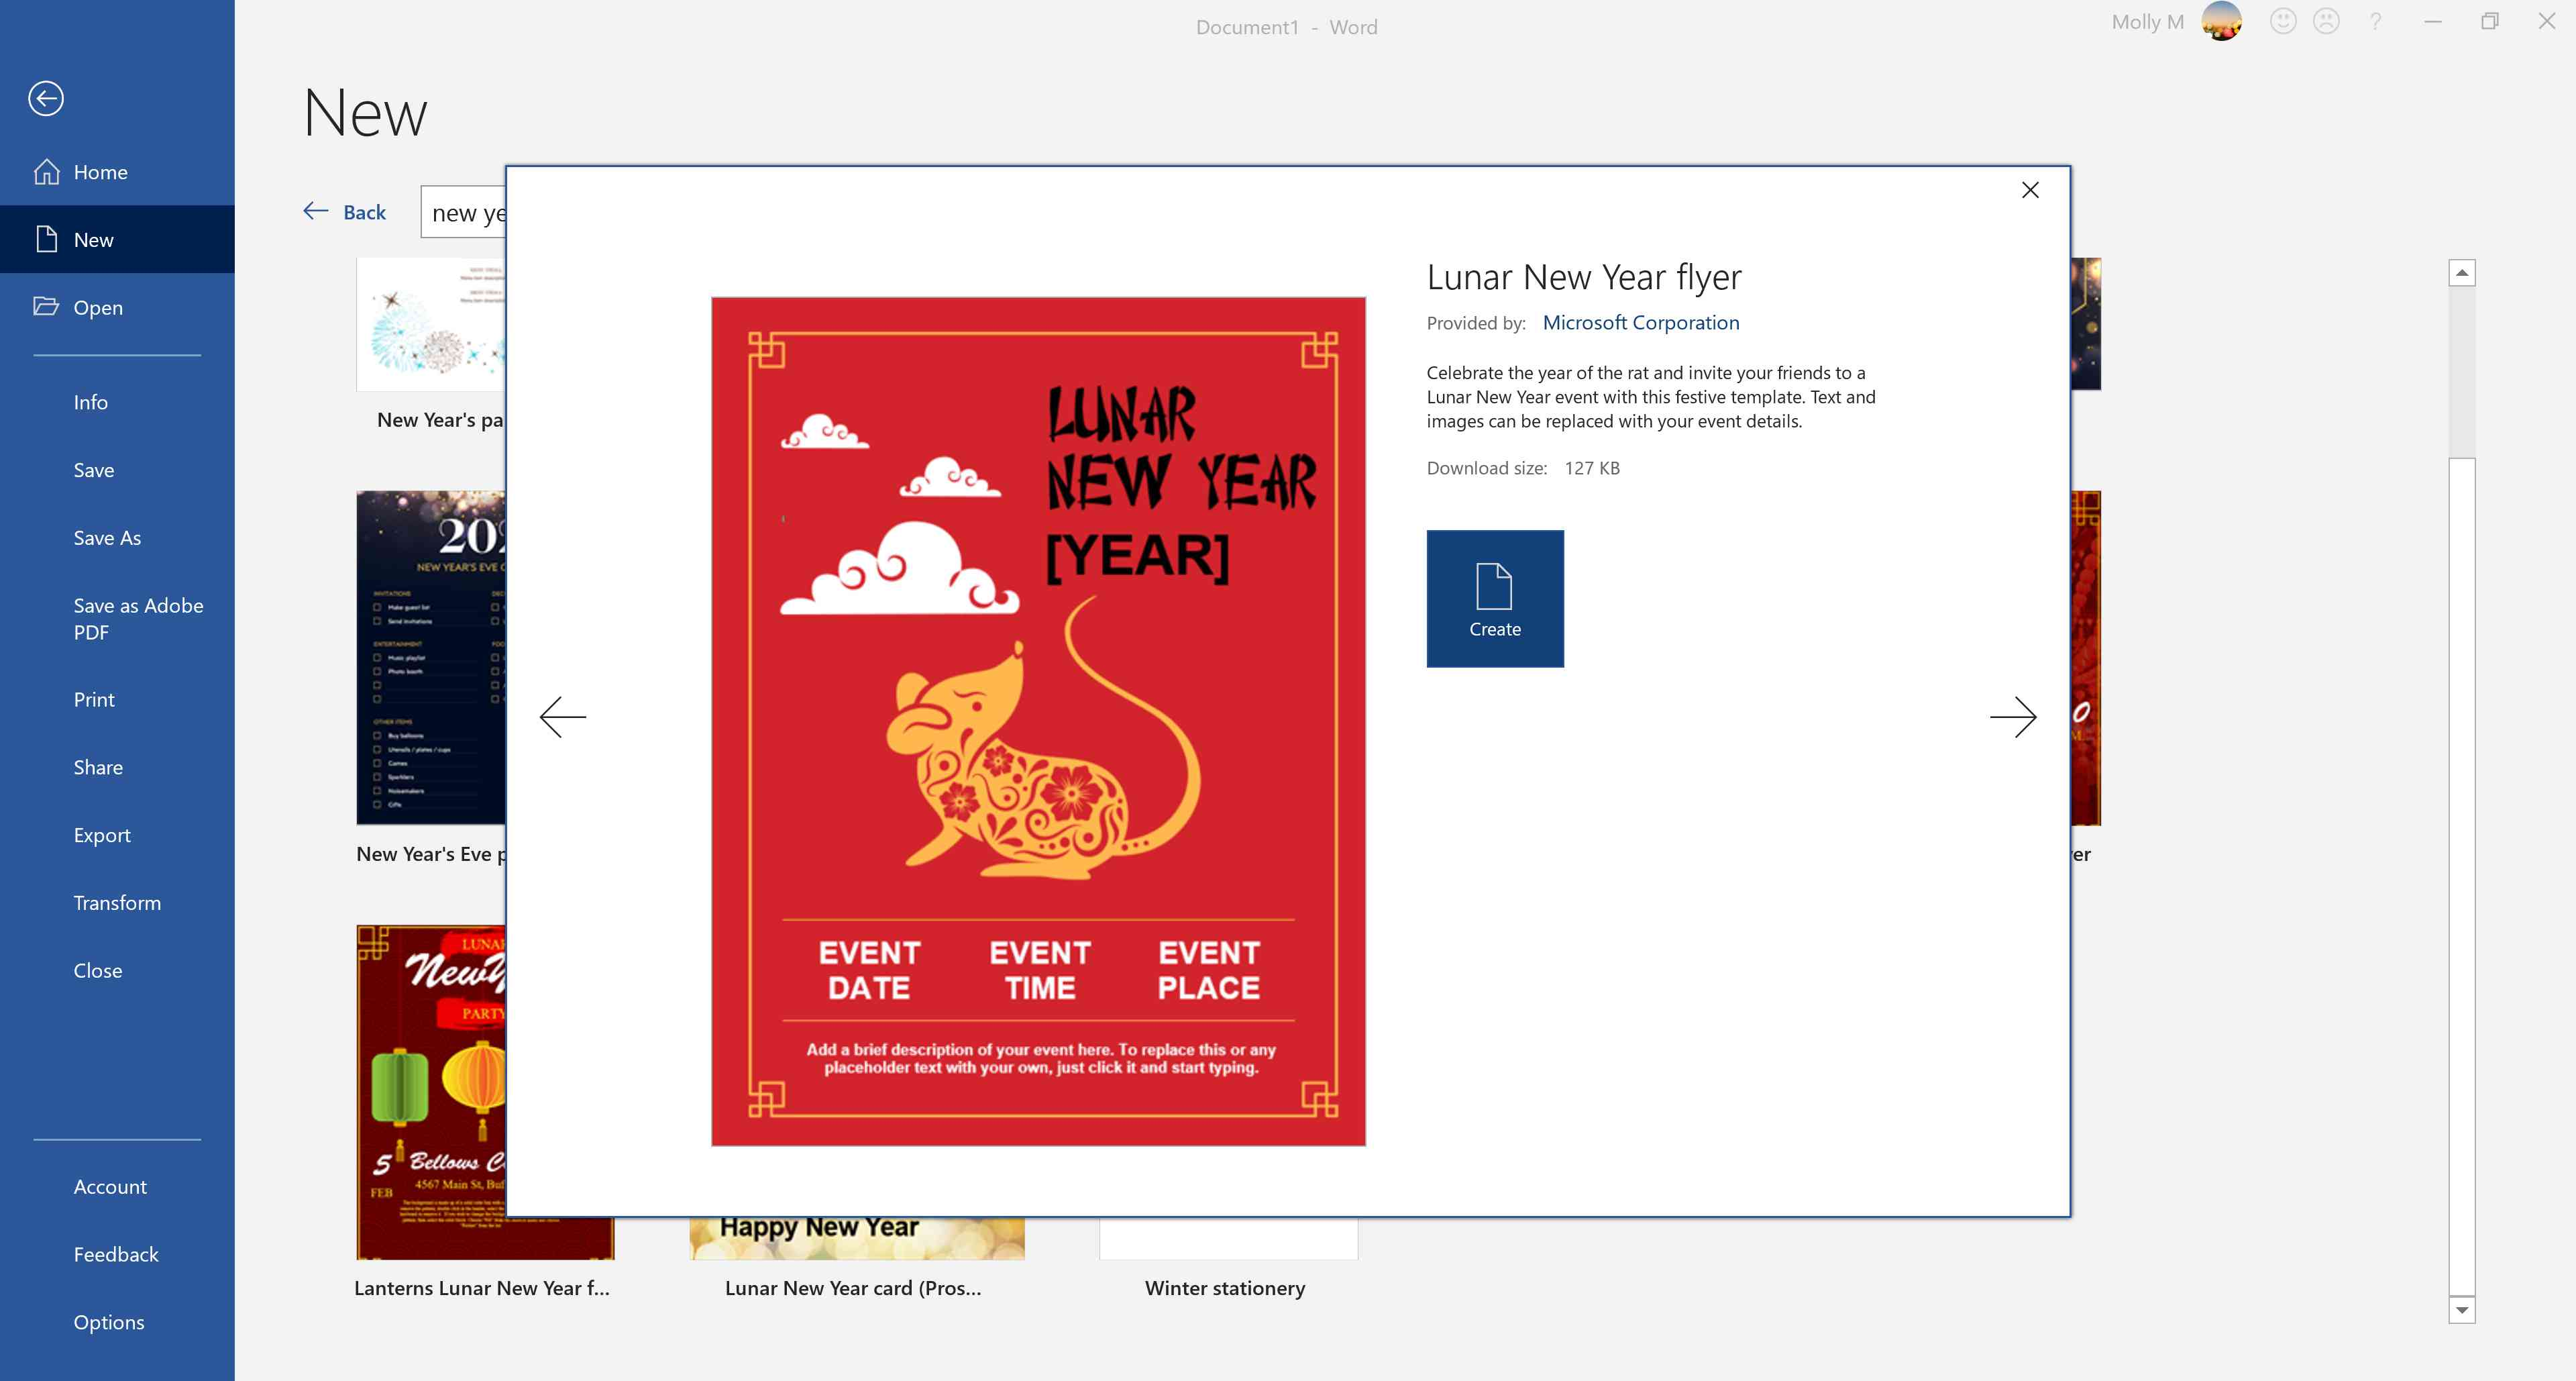 Chinese New Year invite template in Word.